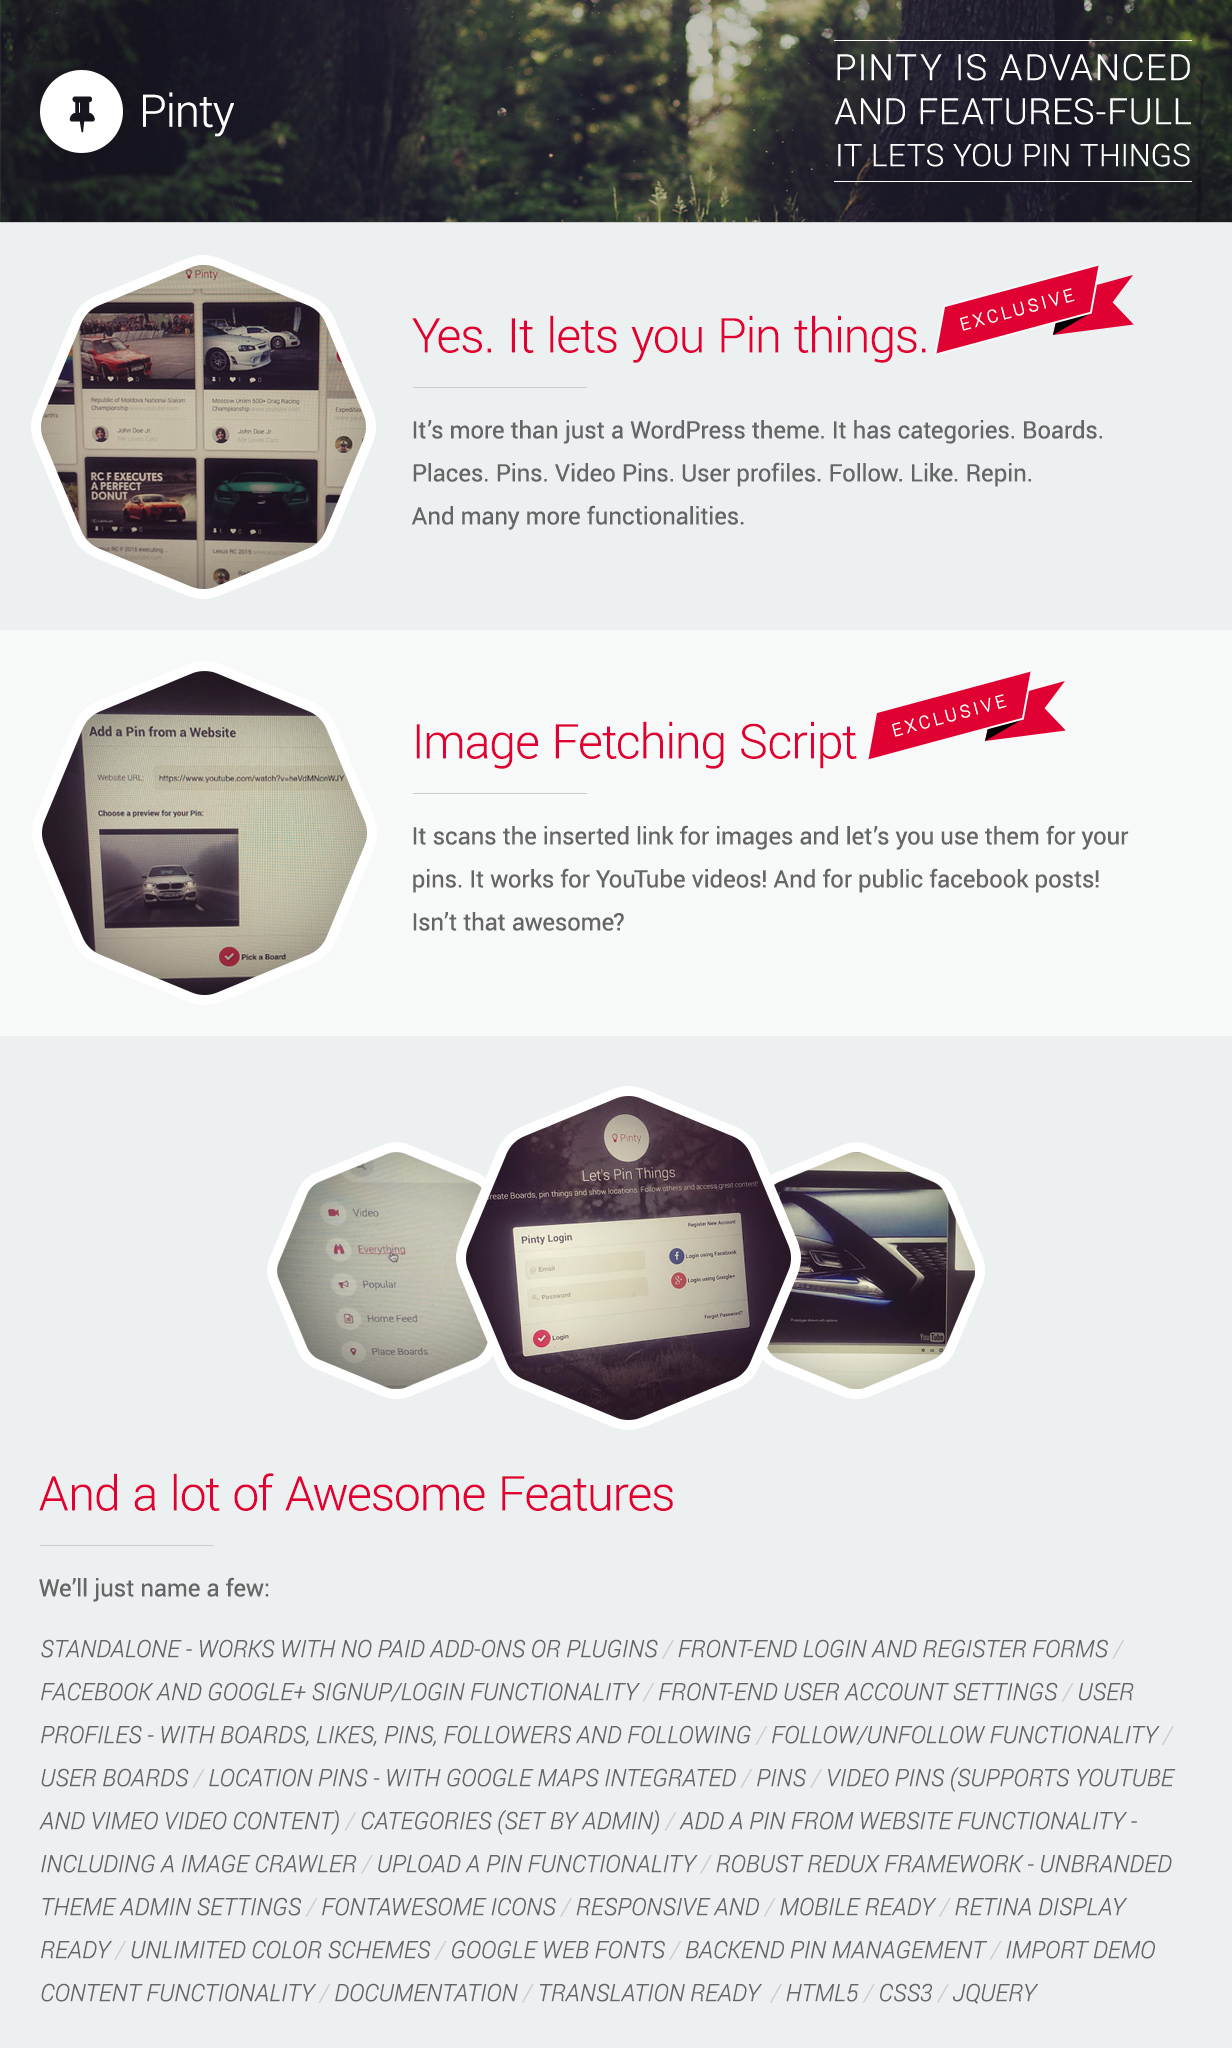 Pinty - Pins Responsive Material Design WP Template - 1